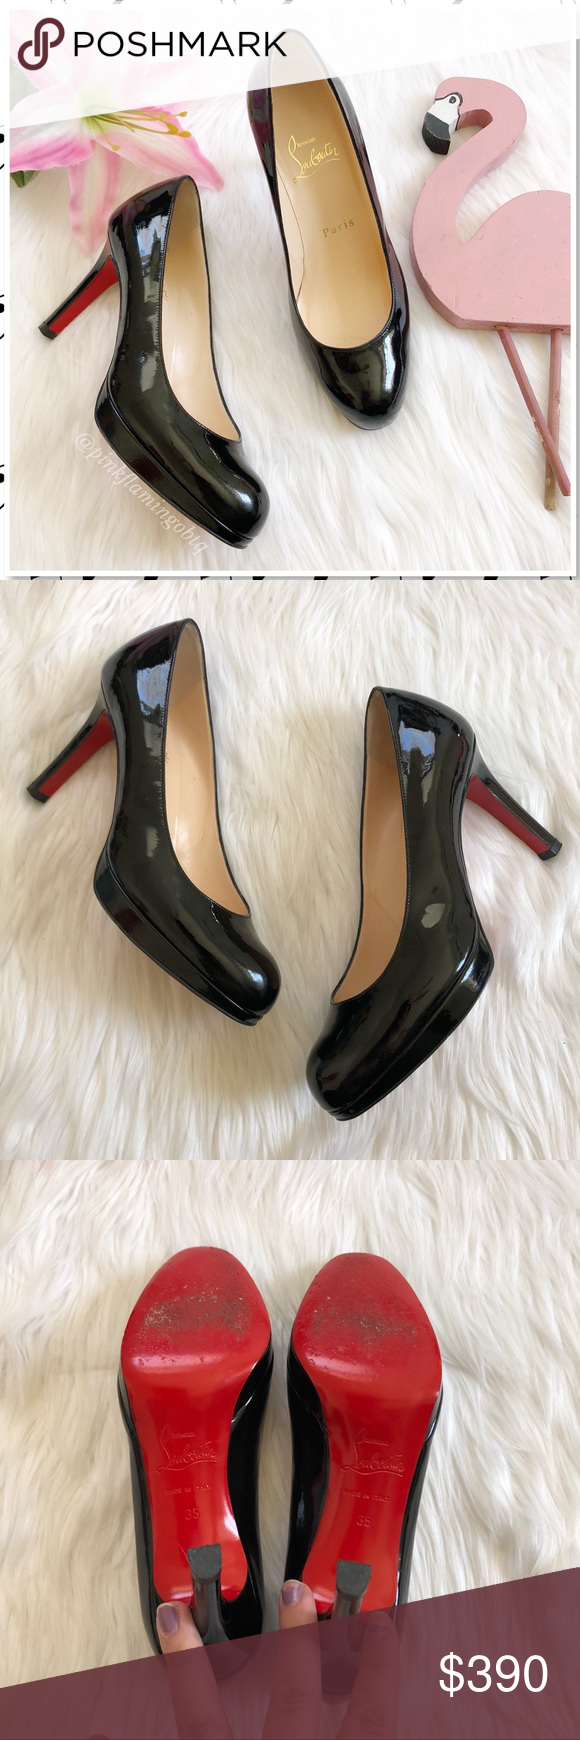 89b2521700d3 Christian Louboutin New Simple Pump 100mm Black 35 Christian Louboutin New  Simple Pump 100mm Black Patent Heels. The updated version of the Simple Pump